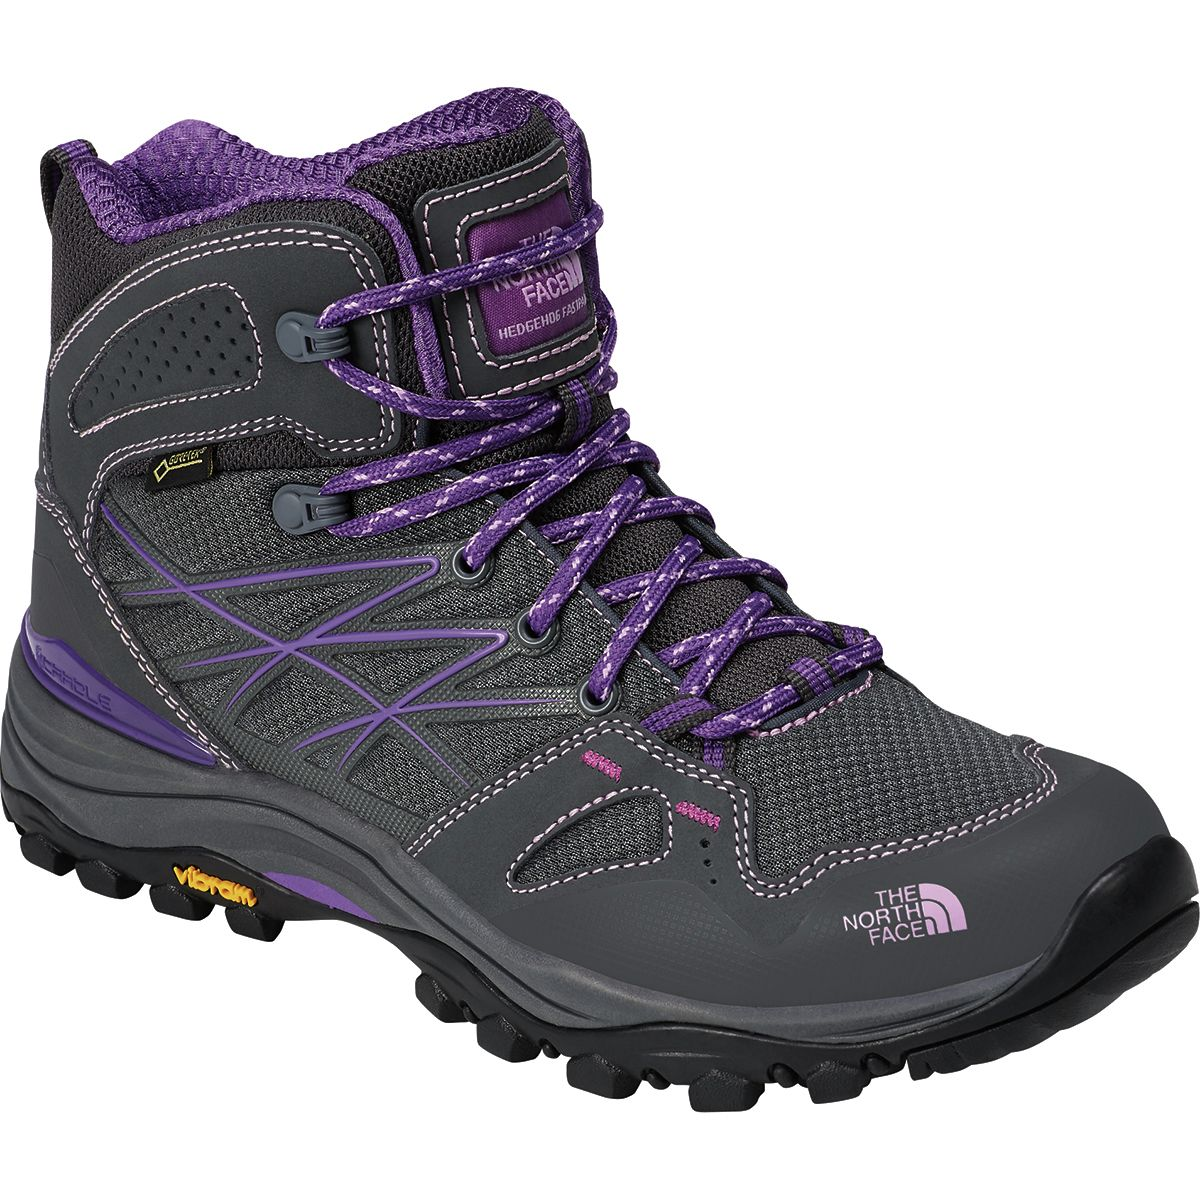 photo: The North Face Women's Hedgehog Fastpack Mid Gore-Tex hiking boot